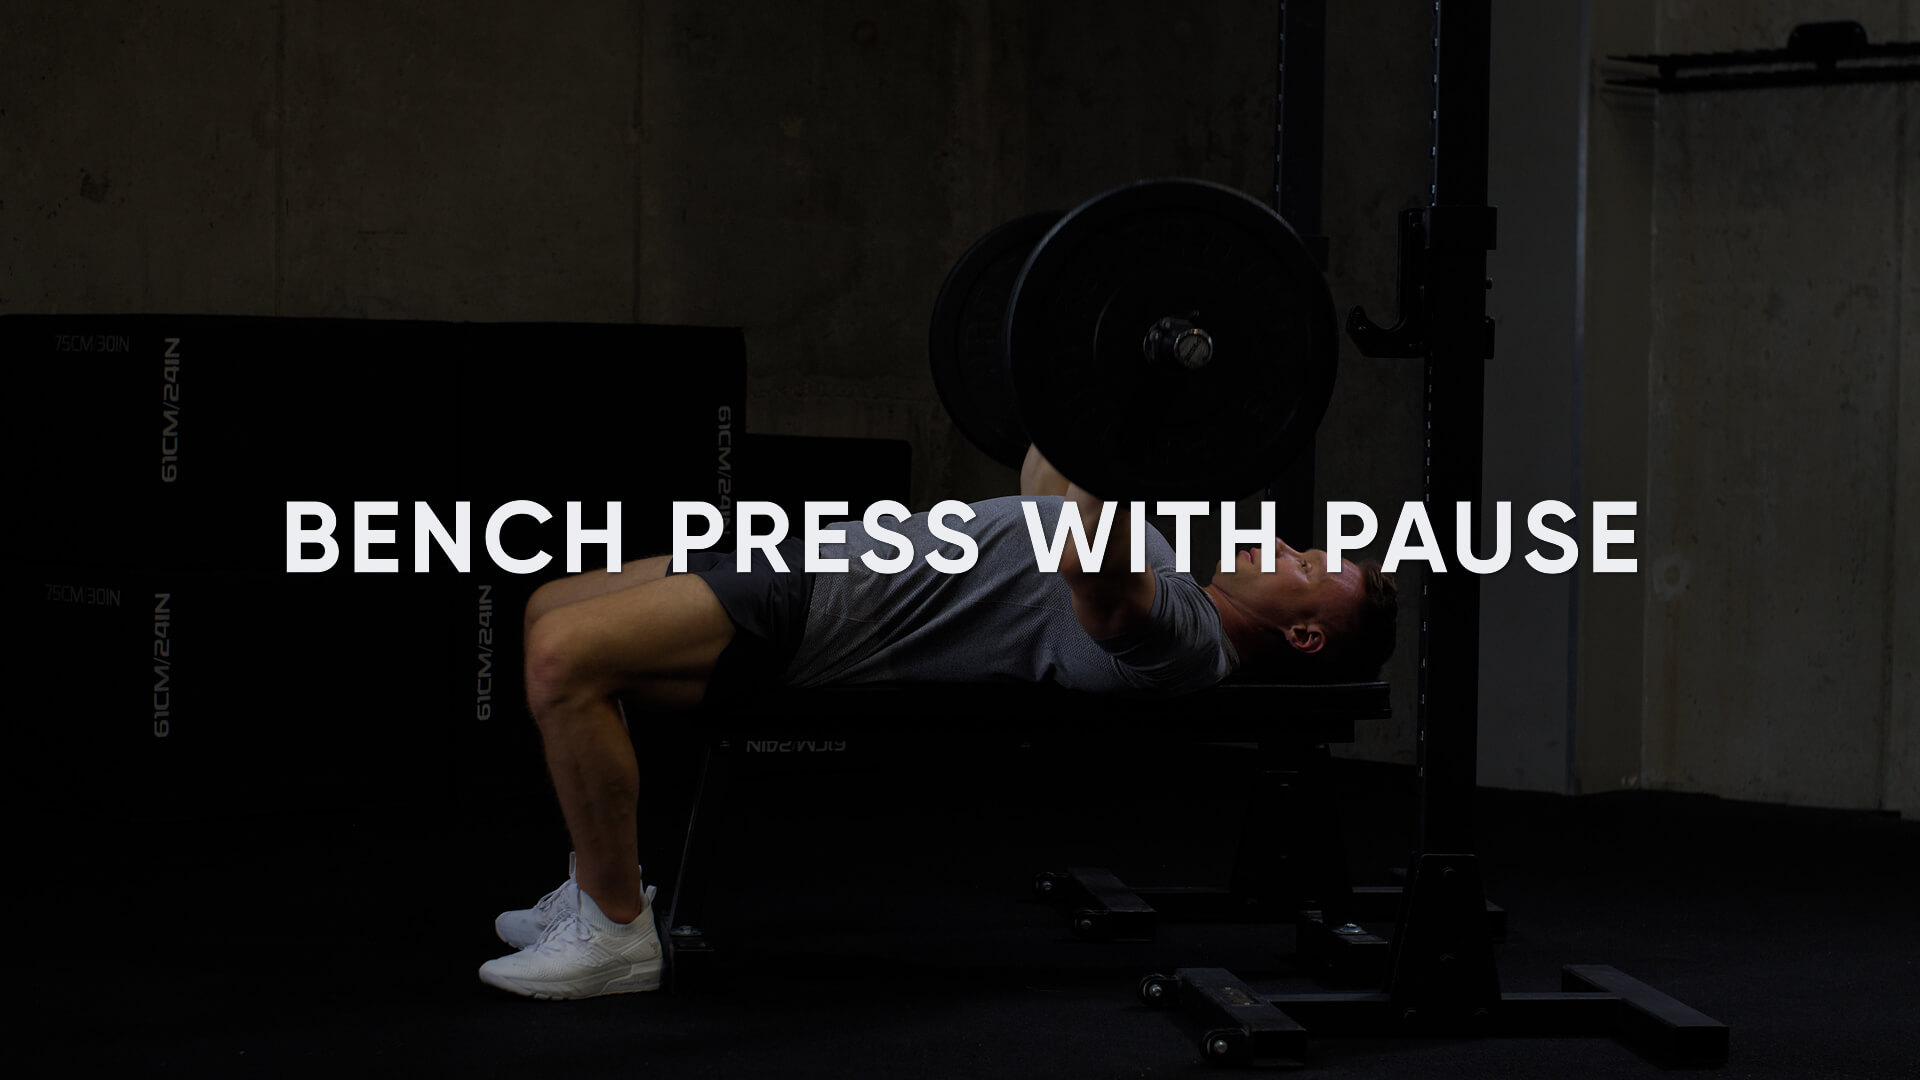 Bench Press with Pause